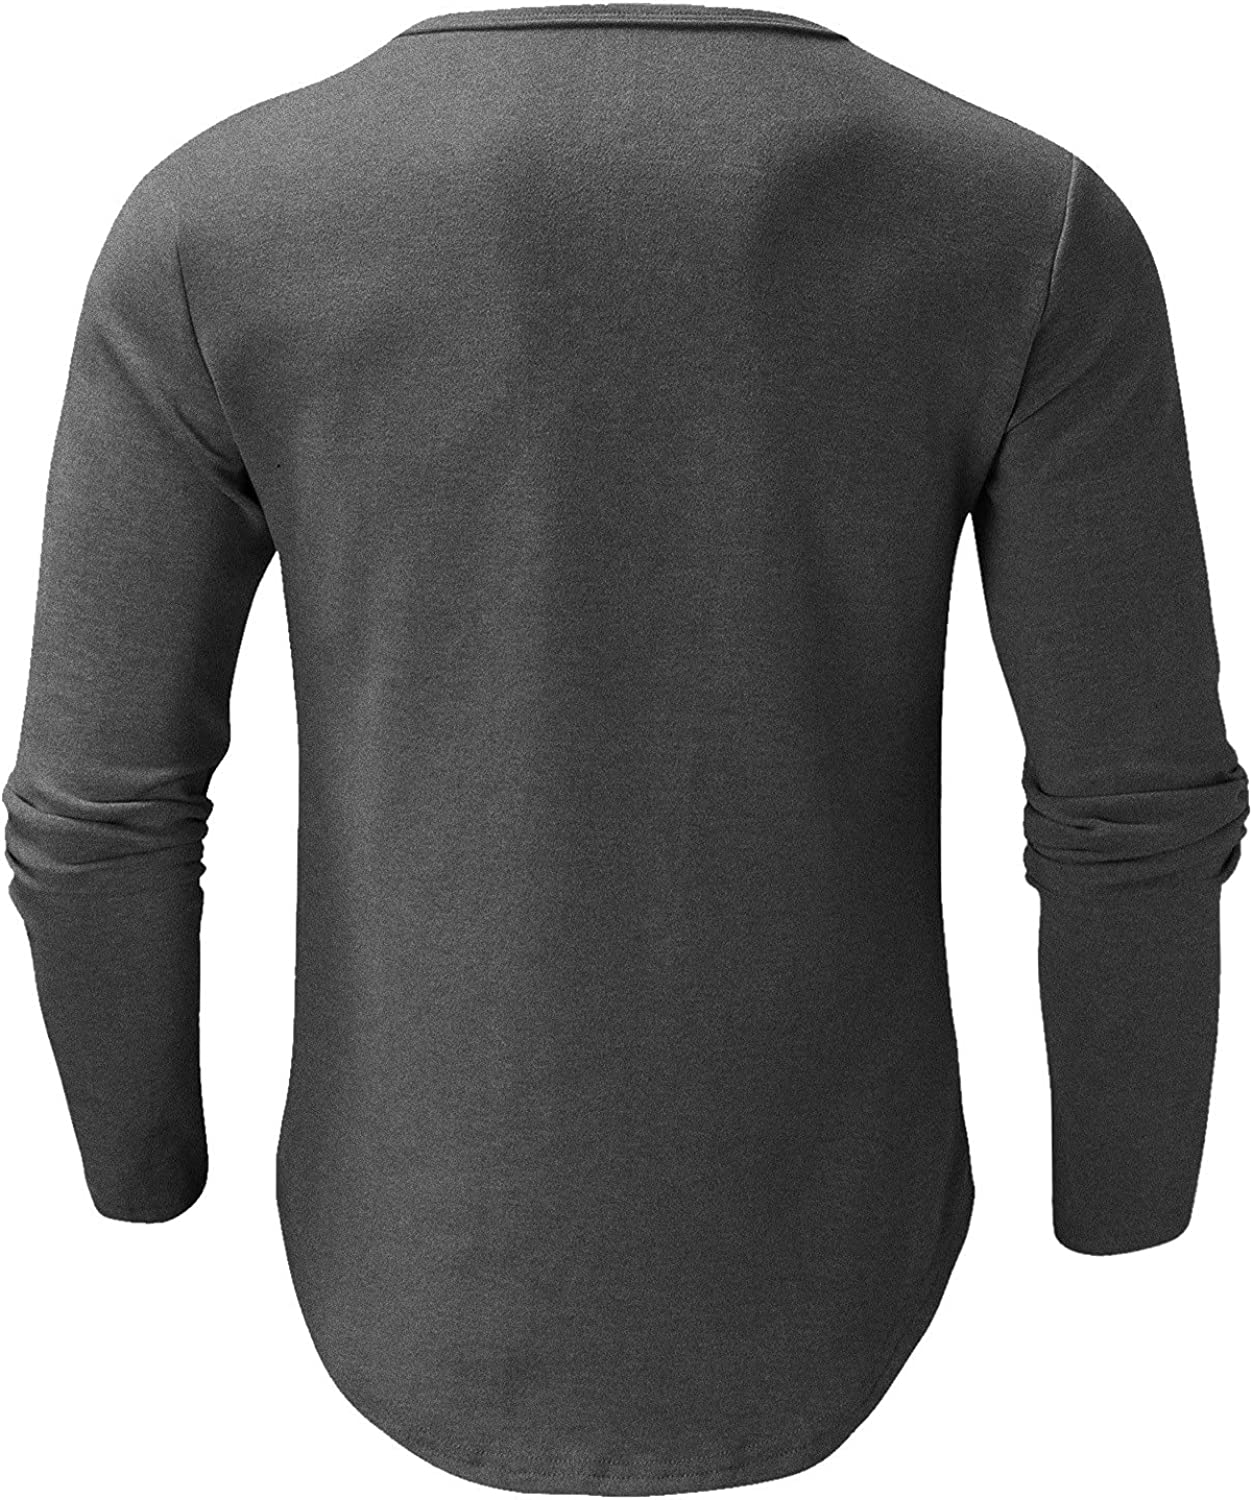 Men's Autumn and Winter Casual Base Layer Shirt Solid Color Round Neck Long-Sleeved Shirt Cotton Sweaters Pullover